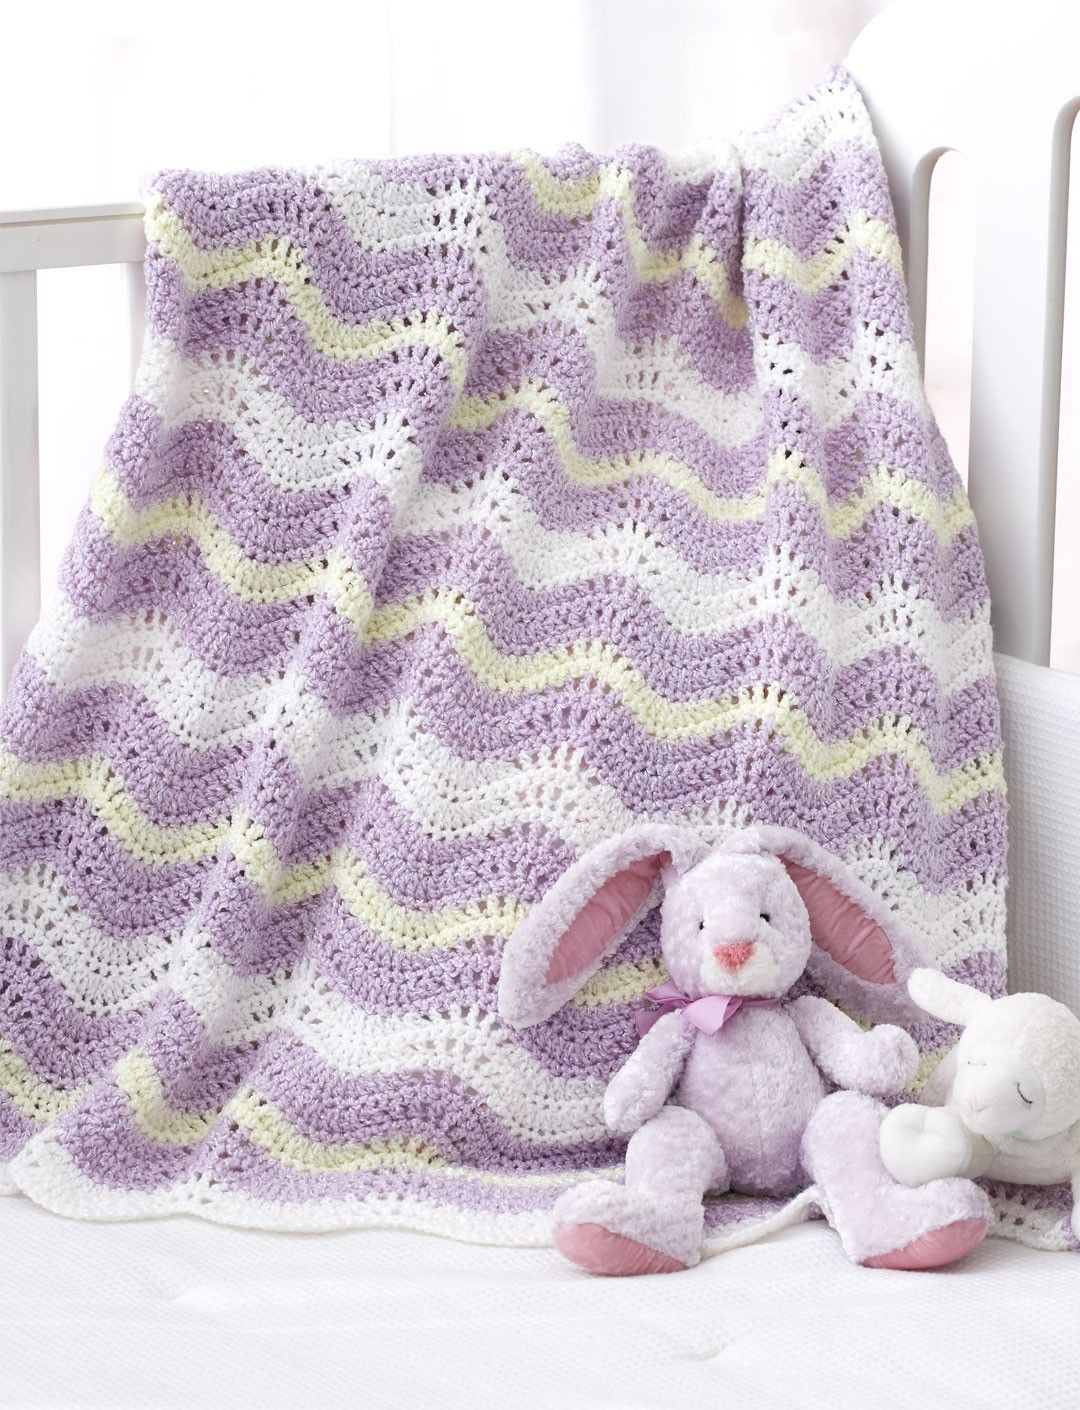 Yarnspirations bernat wavy ripple blanket patterns yarnspirations bernat wavy ripple blanket patterns yarnspirations pattern downloaded crochet blanket patternsbaby bankloansurffo Choice Image